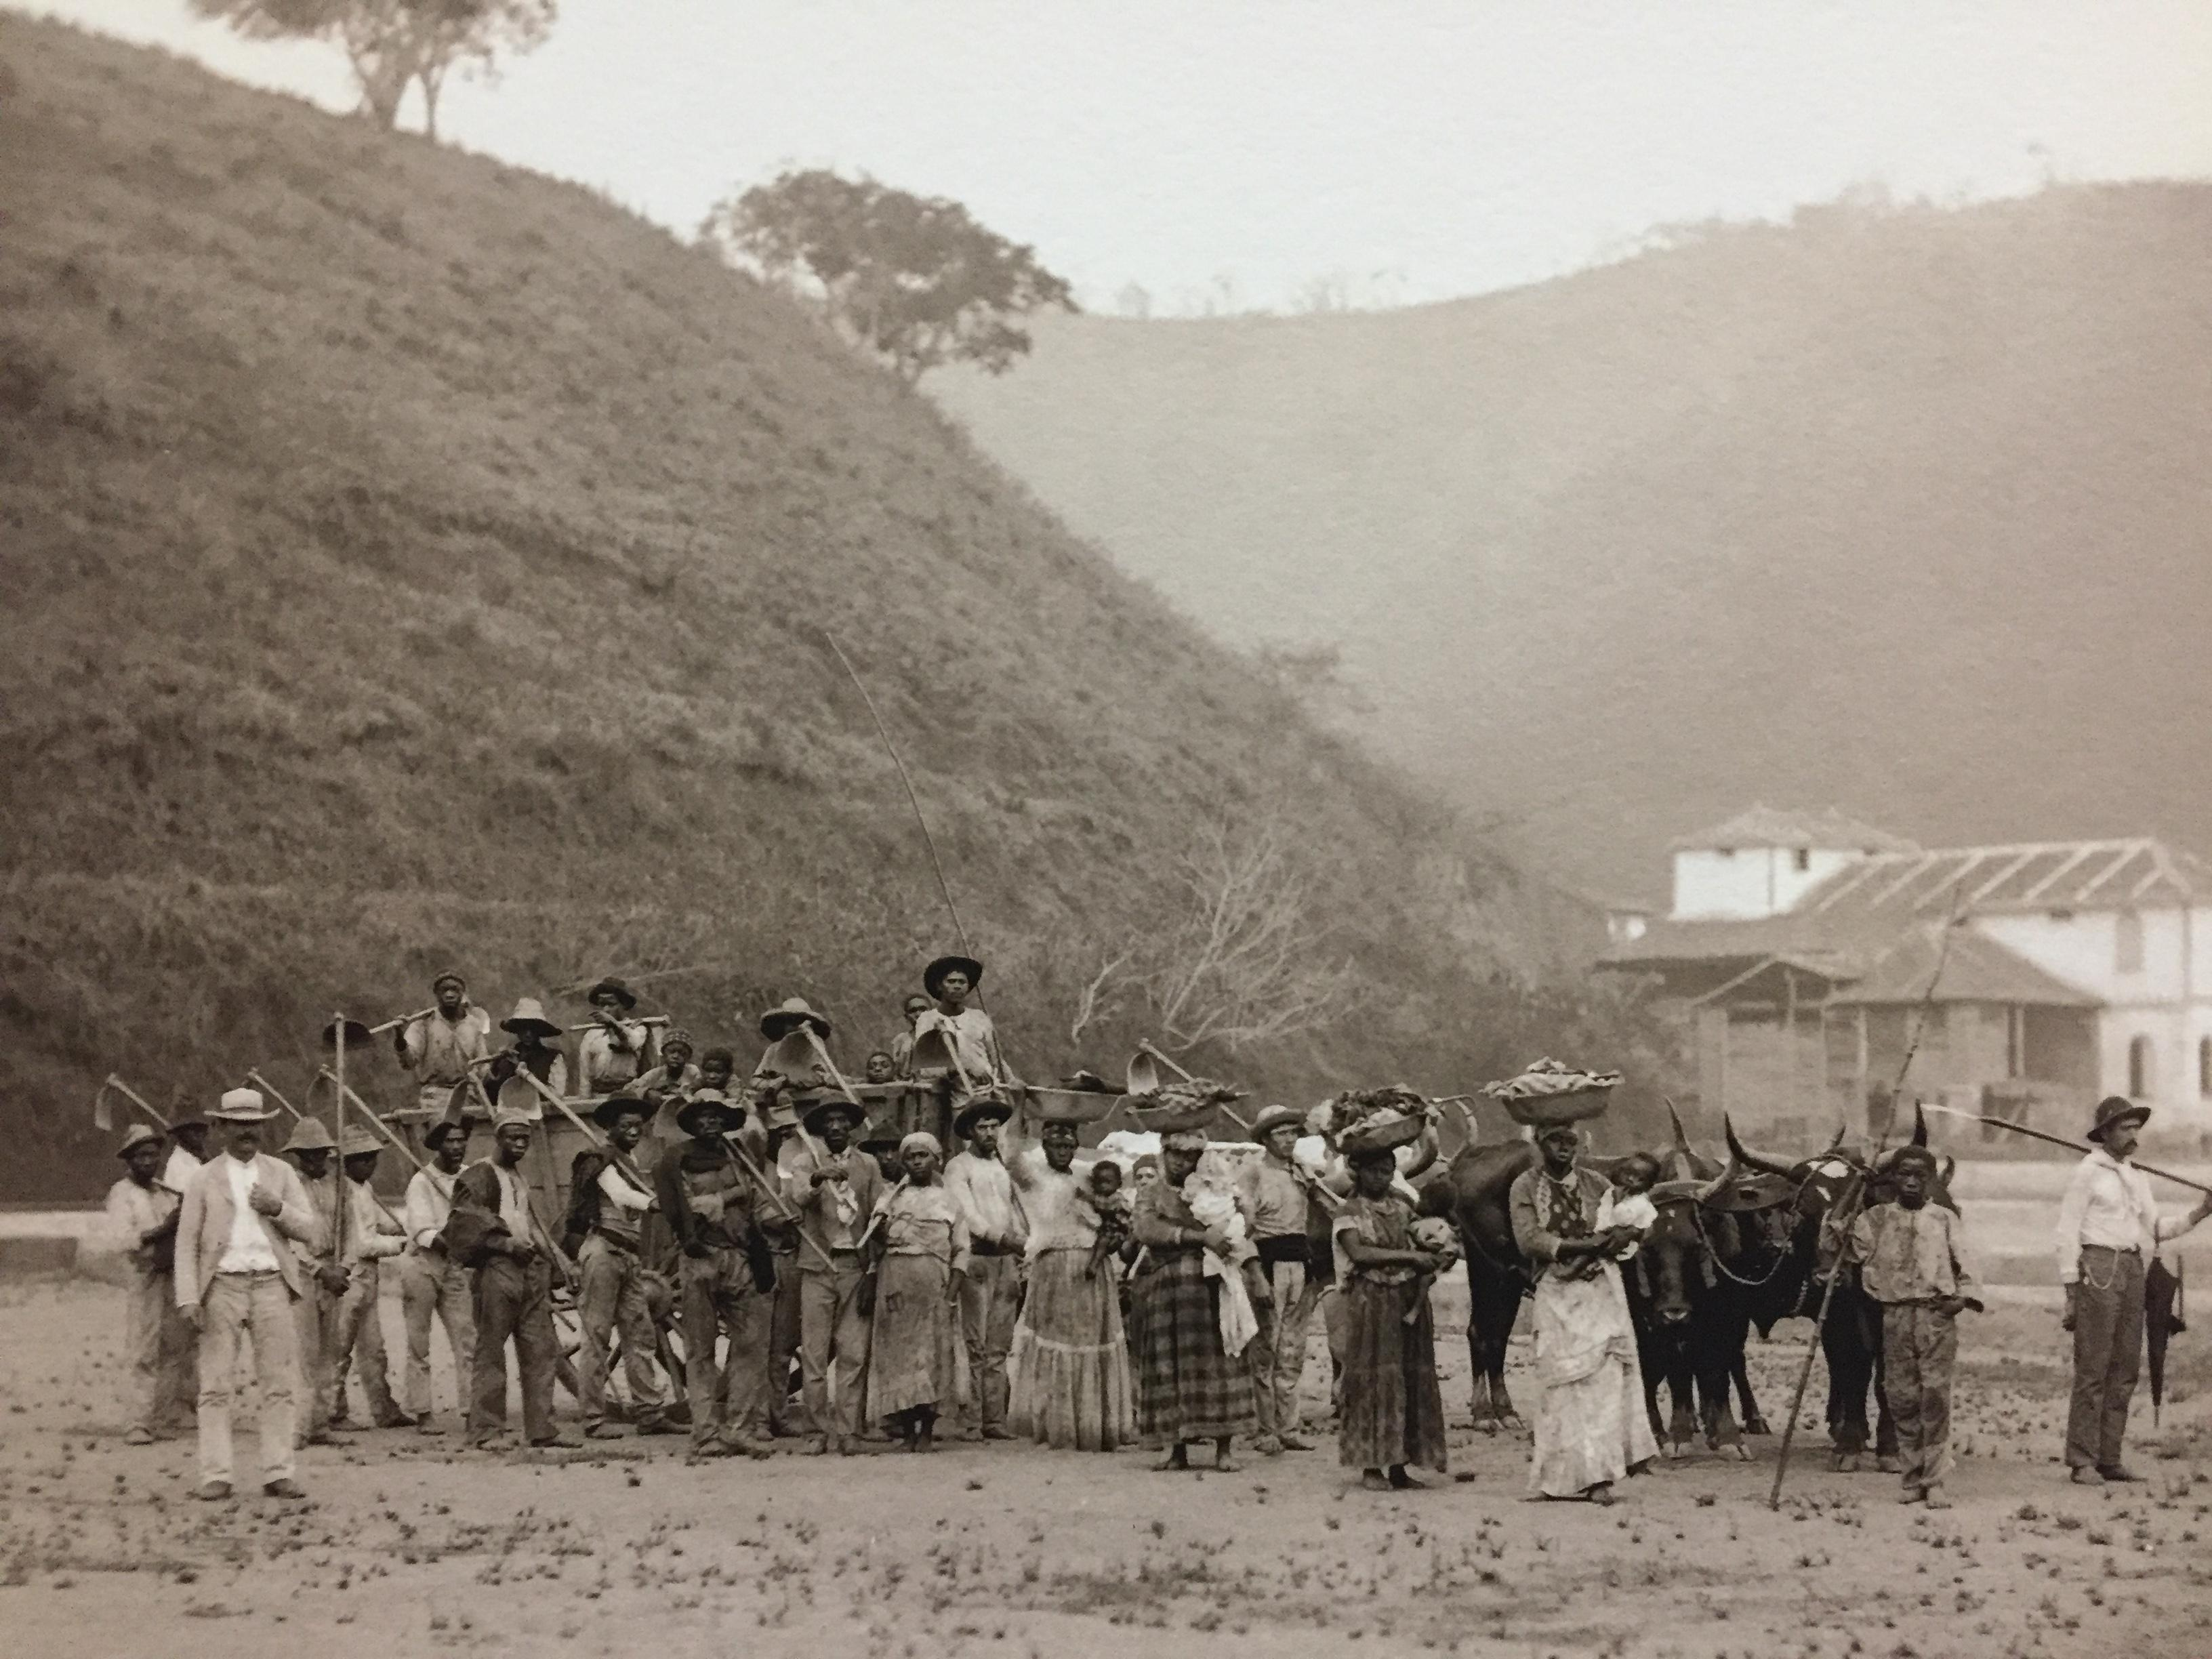 slavery in brazil What slavery in brazil clip are you looking for who sings the lyrics to this song slavery in brazil began long before the first portuguese settlement was established in 1532, as members of one tribe.